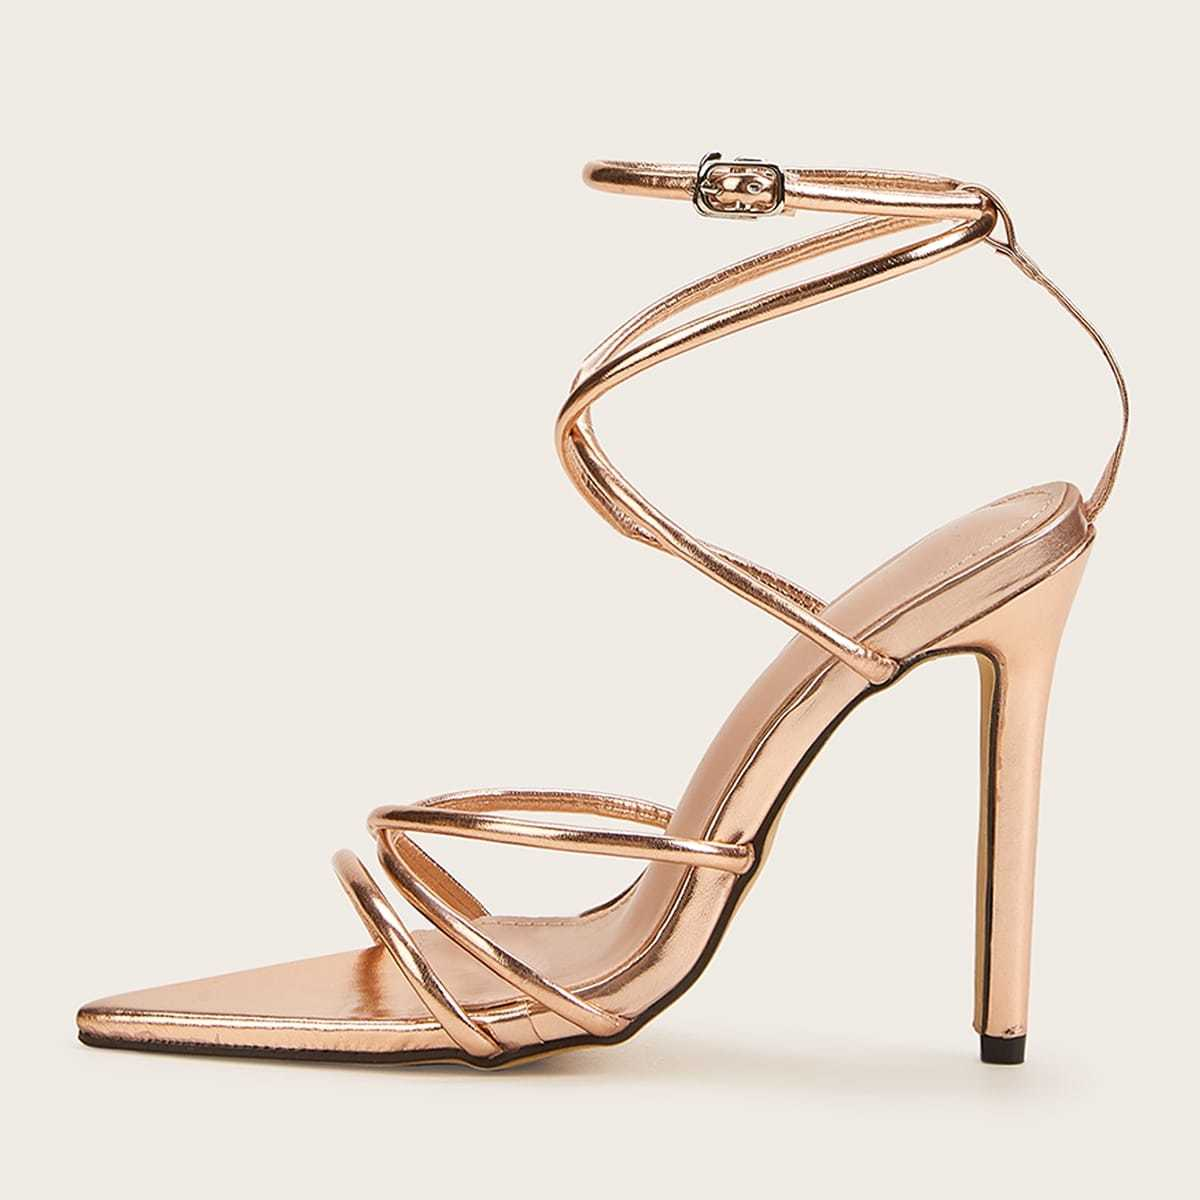 Ankle Strap Strappy Stiletto Heels in Gold by ROMWE on GOOFASH